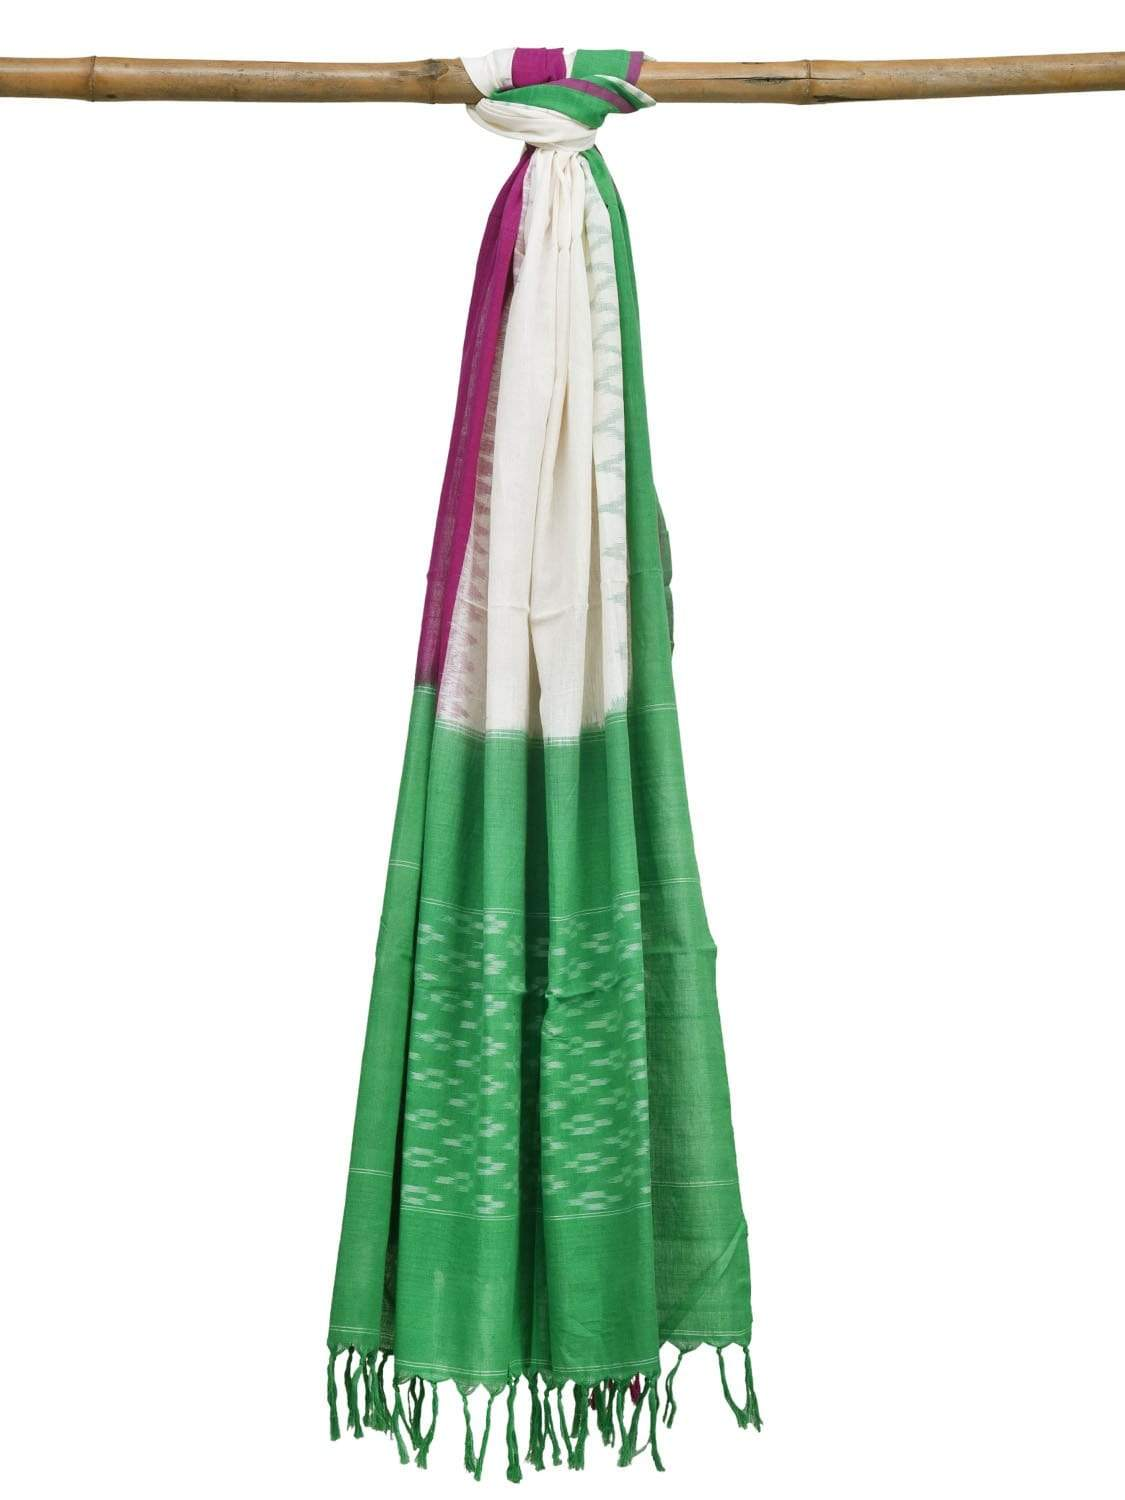 Green and Purple Pochampally Ikat Cotton Handloom Dupatta with Temple Border Design ds1893